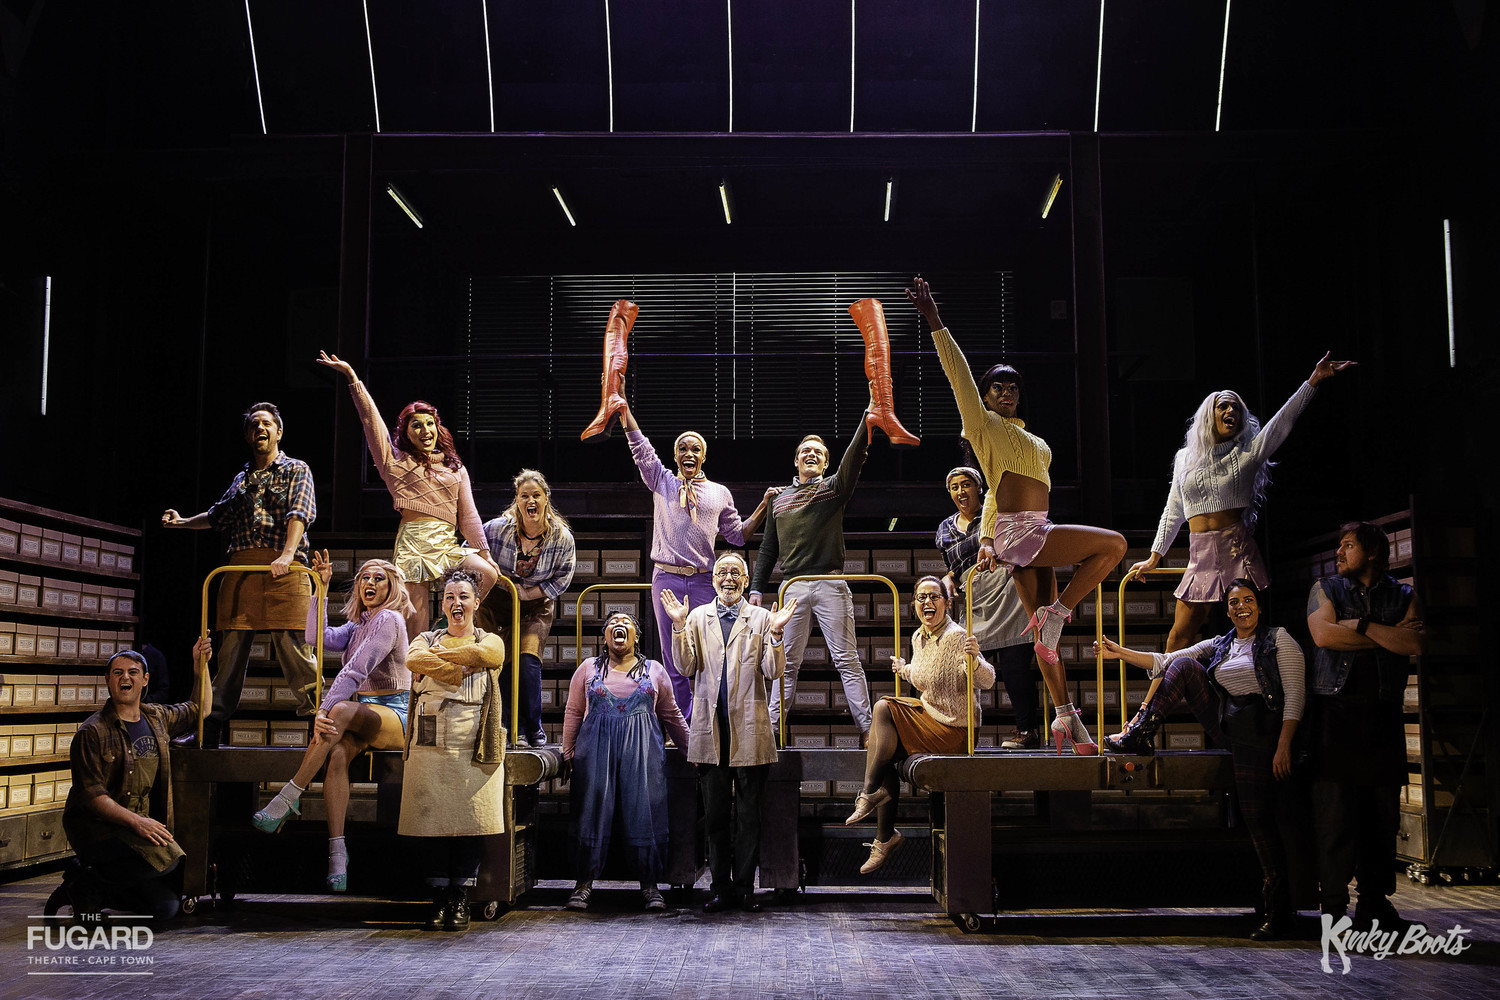 BWW Review: Why Cape Town Can't Stop Talking About KINKY BOOTS at The Fugard Theatre